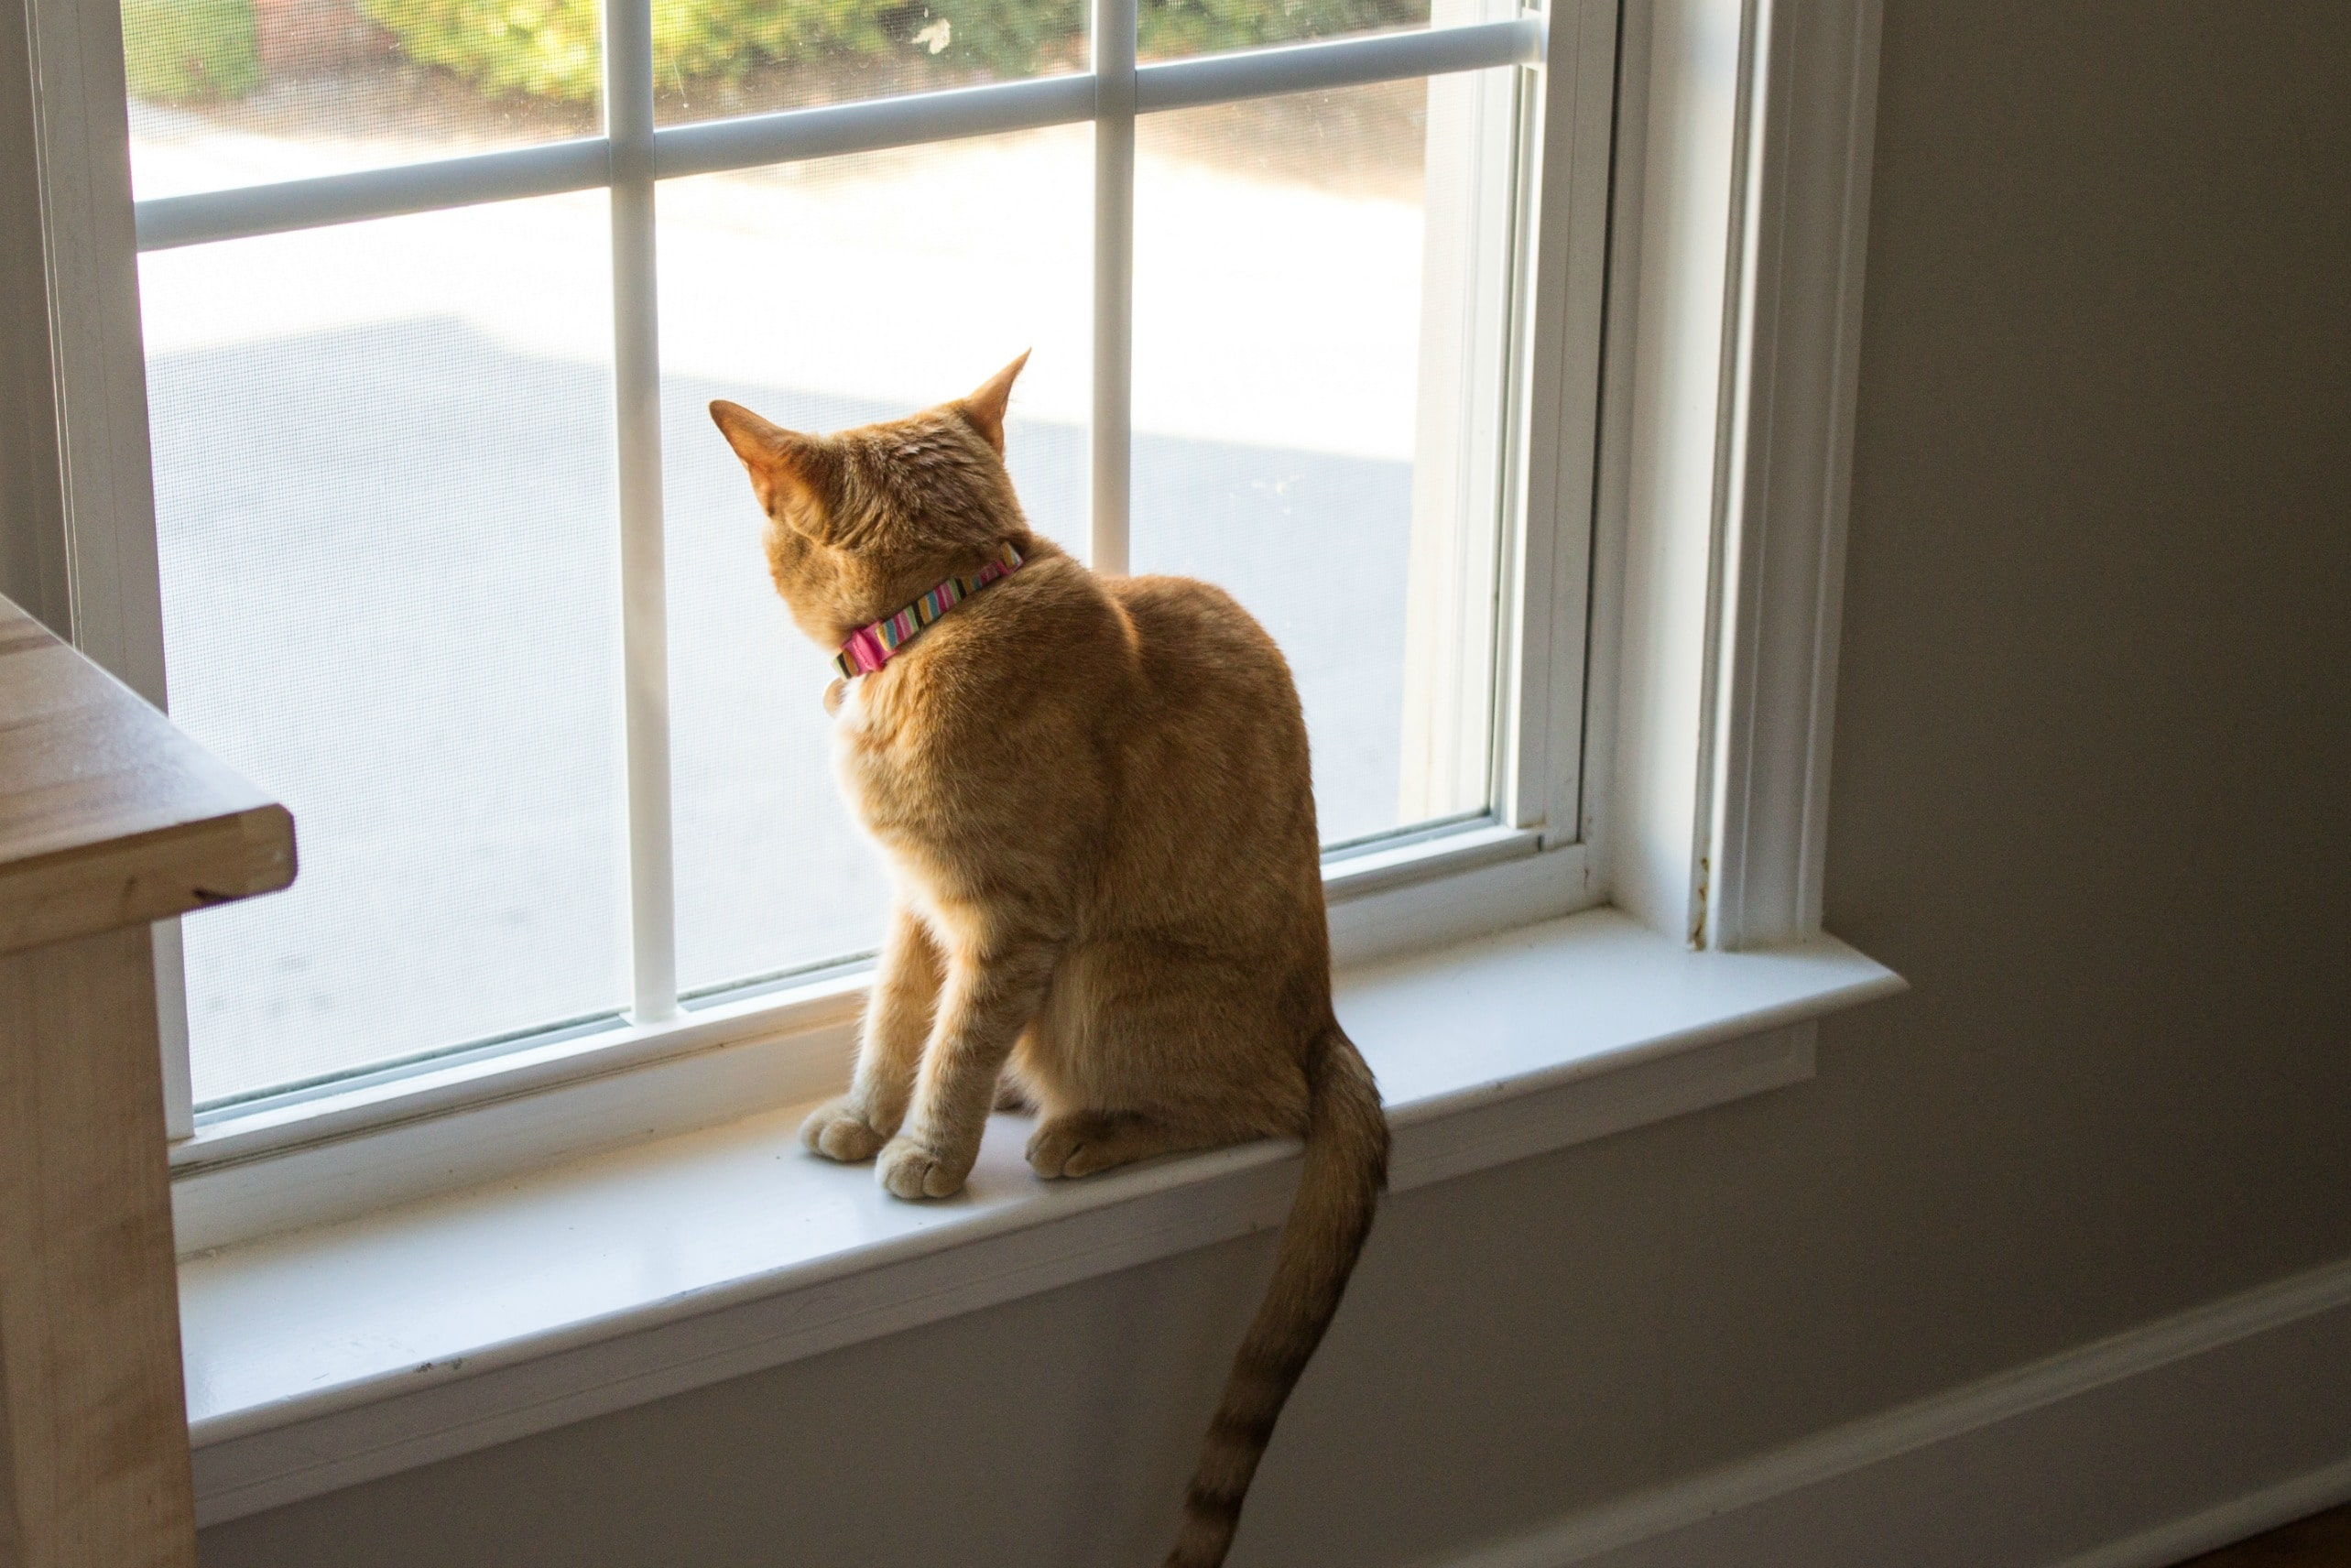 Cat sitting on a window ledge looking out the window